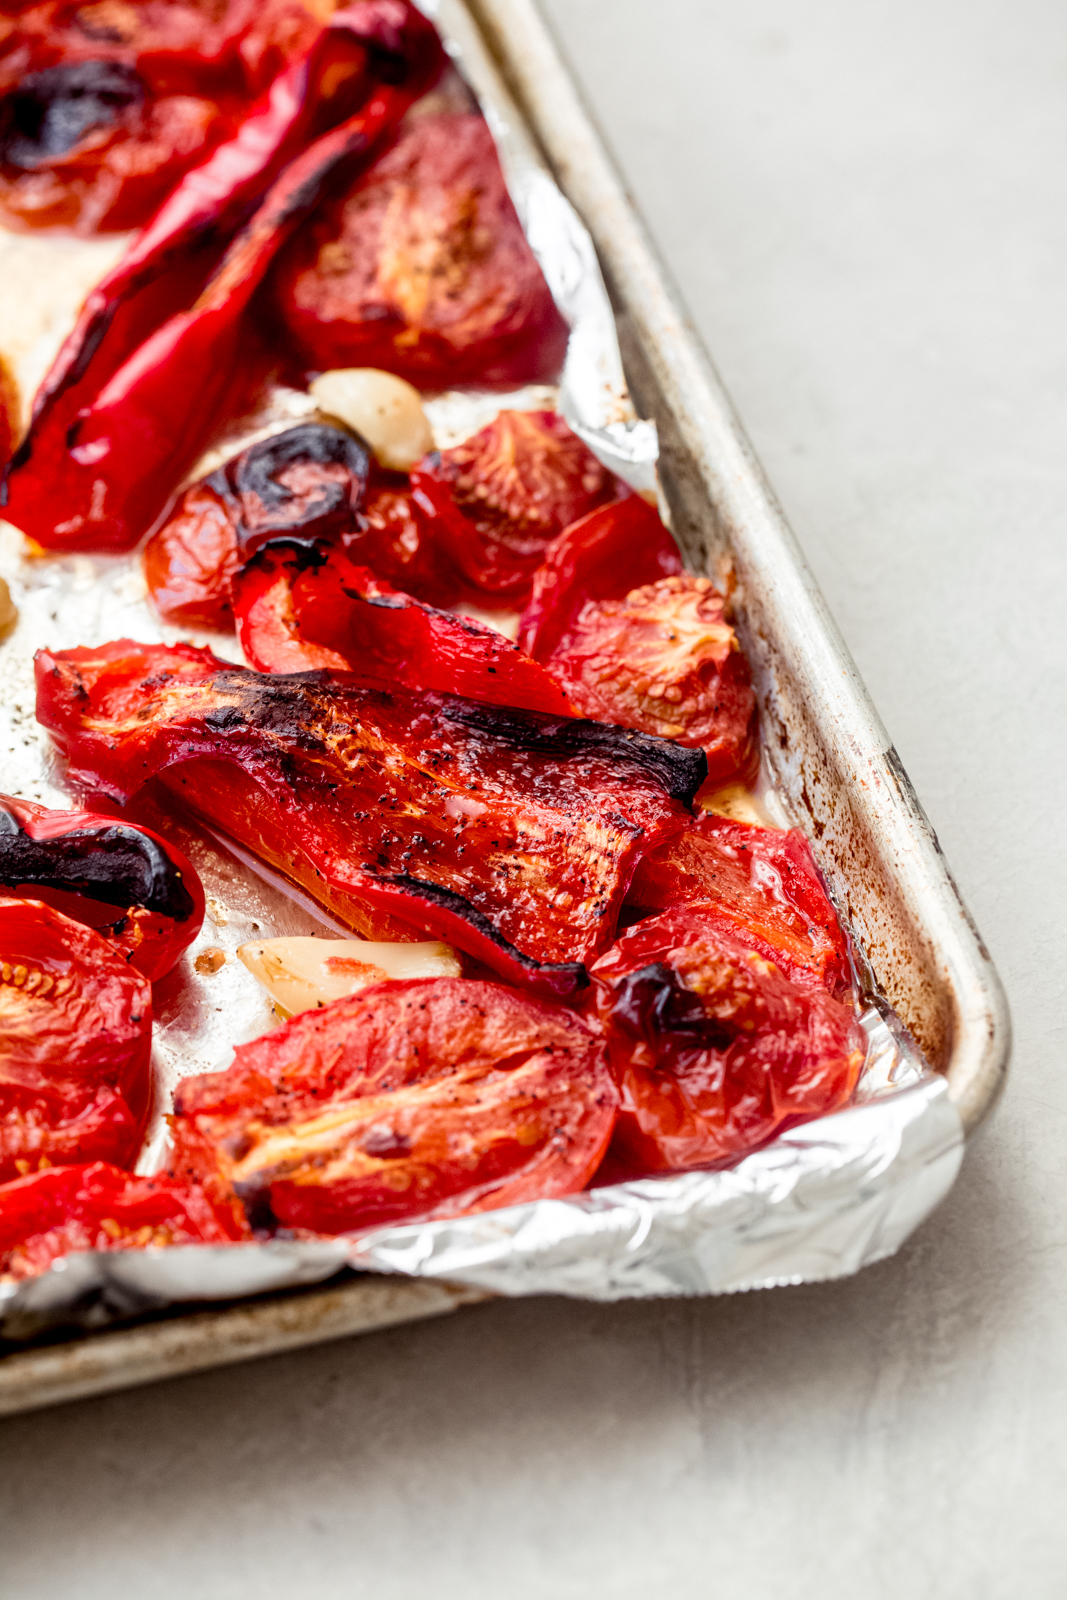 roasted red peppers on a  baking sheet tray